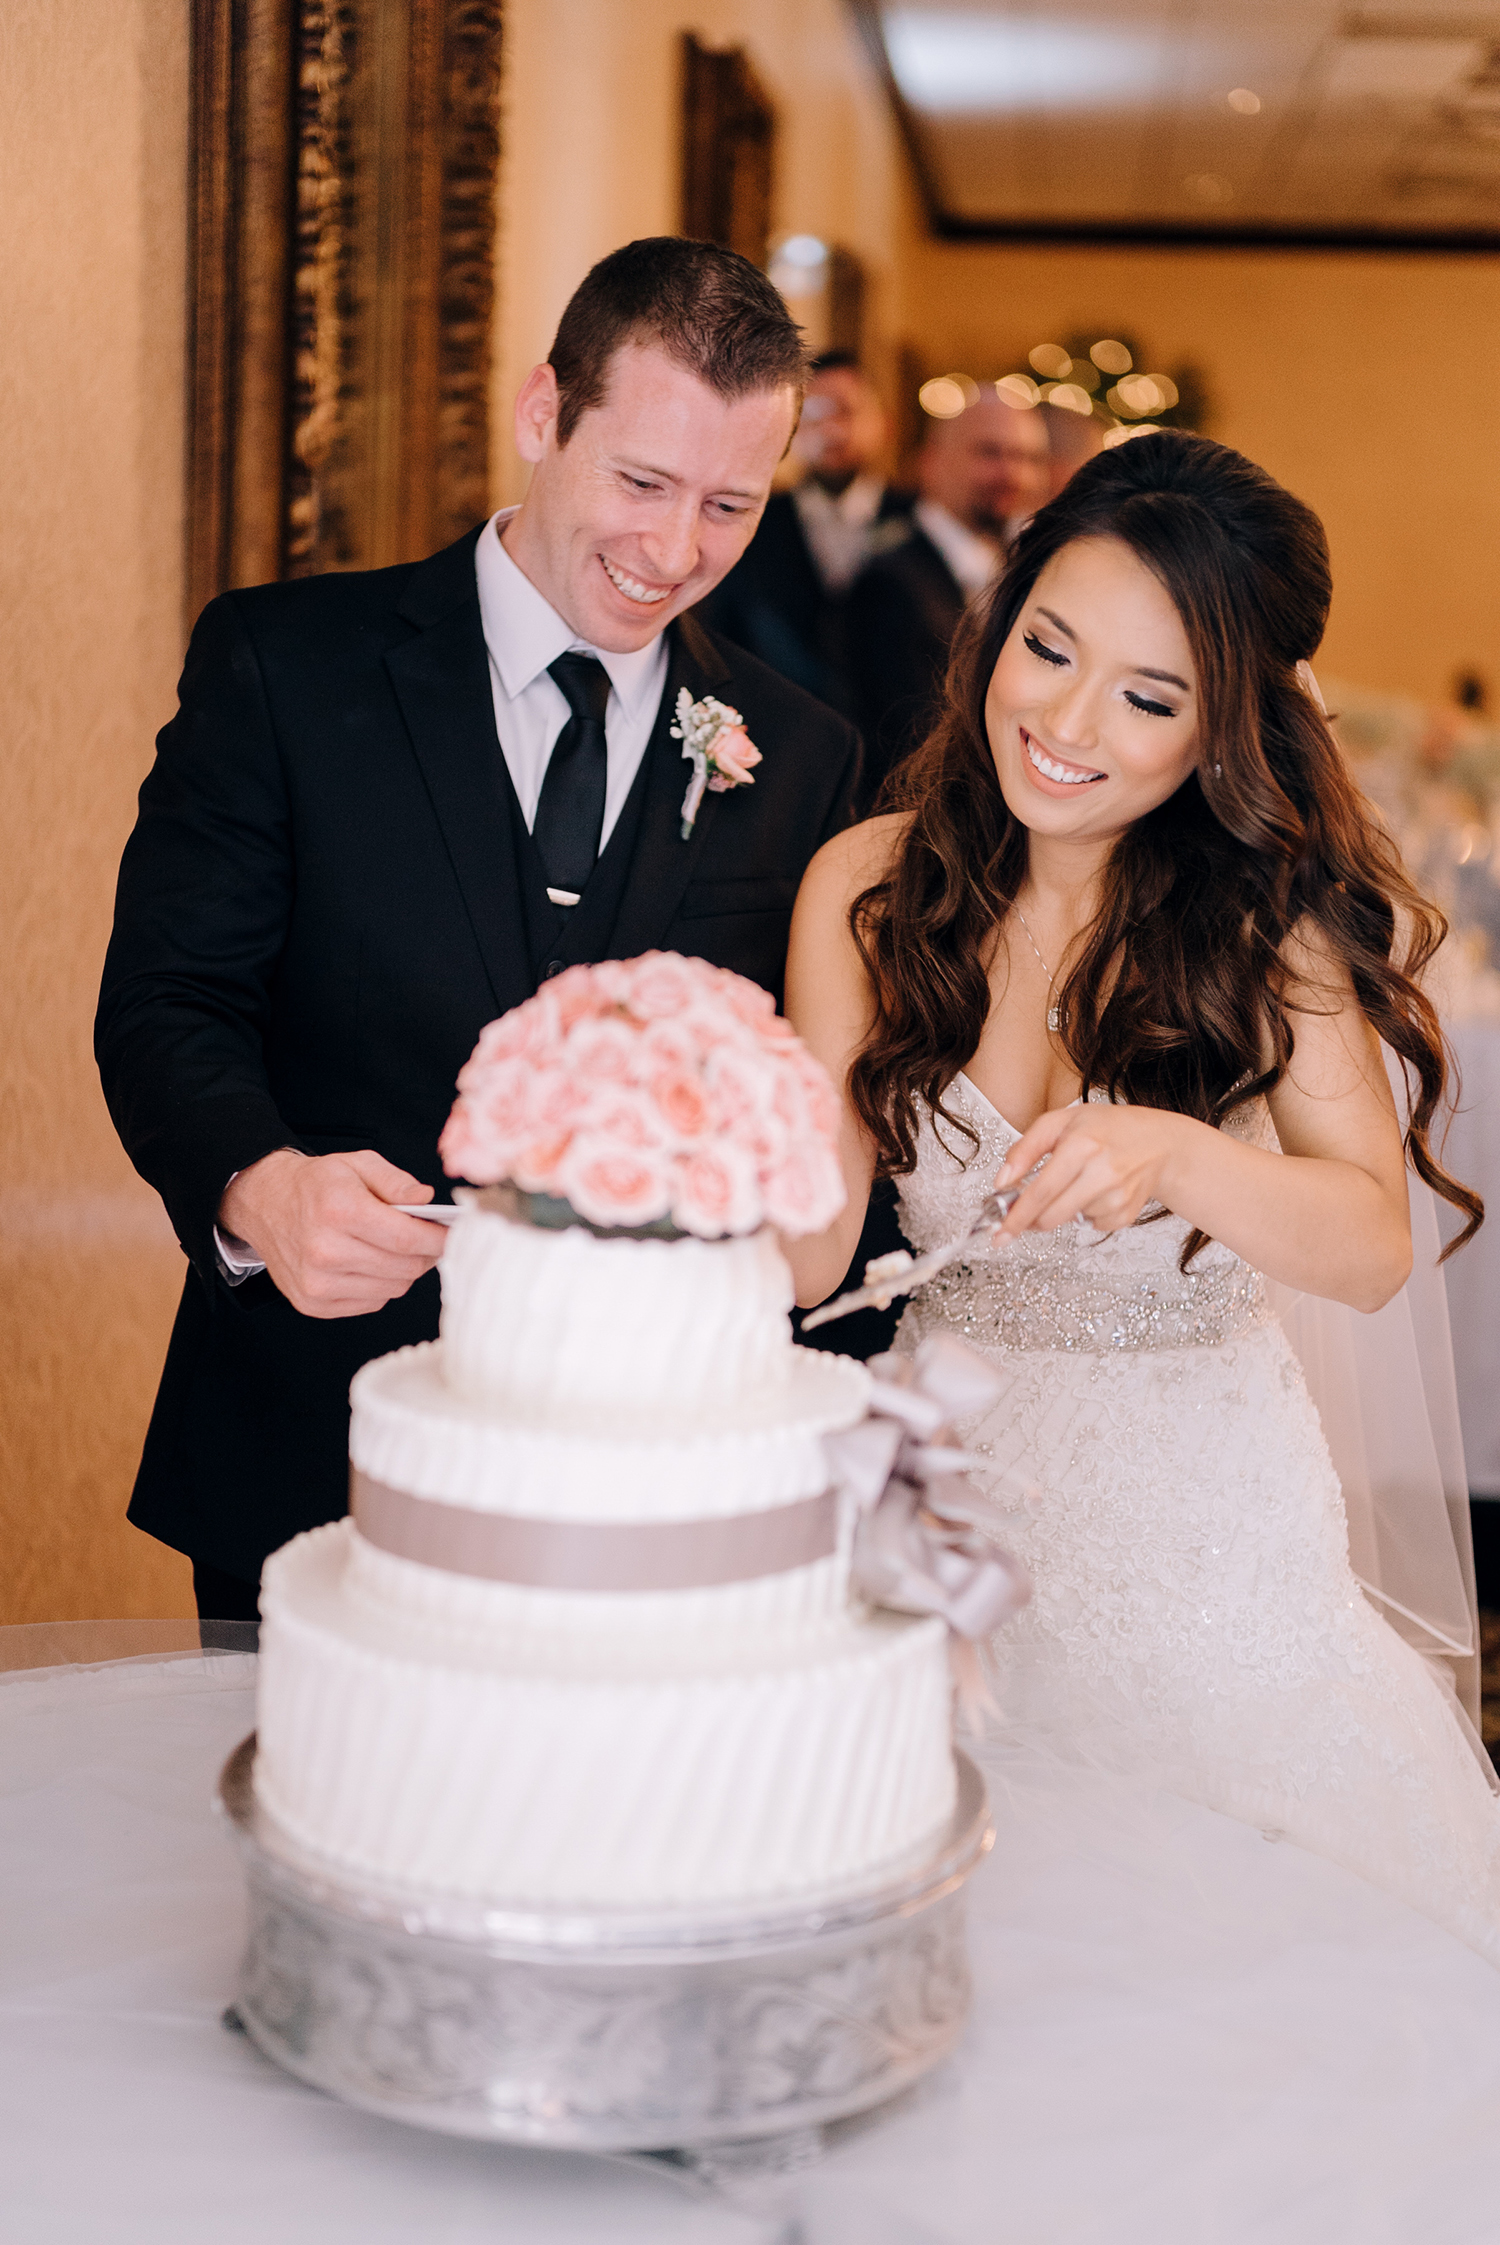 bride and groom cutting cake at classic romance wedding